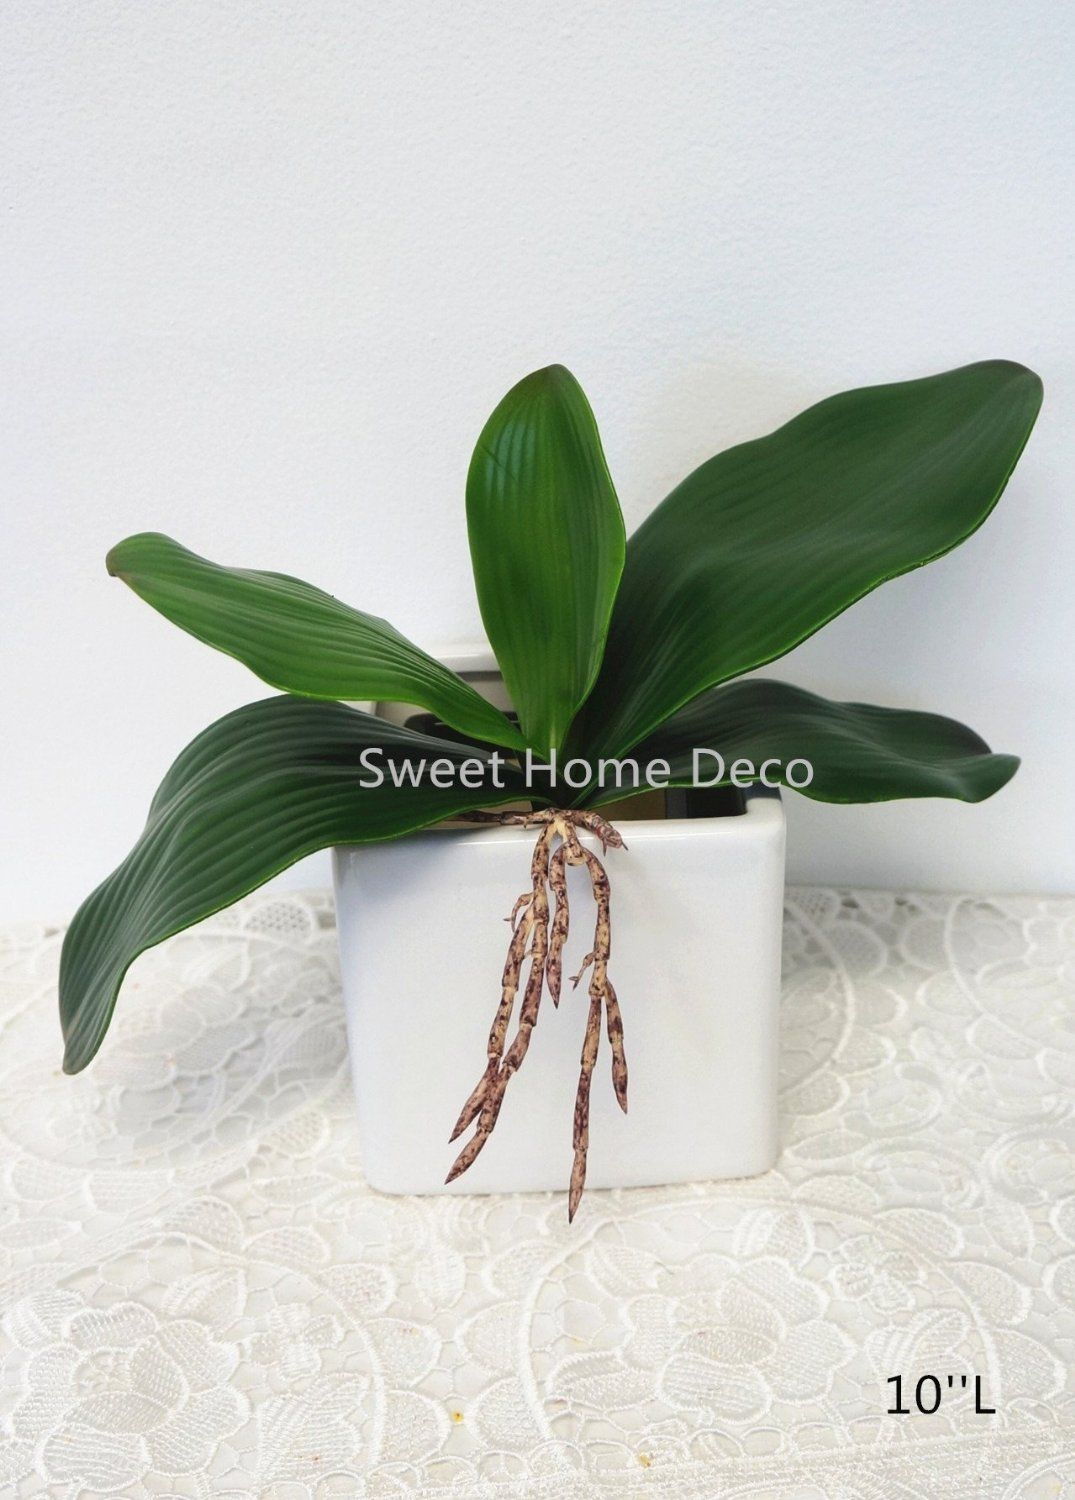 Sweet home deco gel coated phanaenopsis orchid artificial greenery